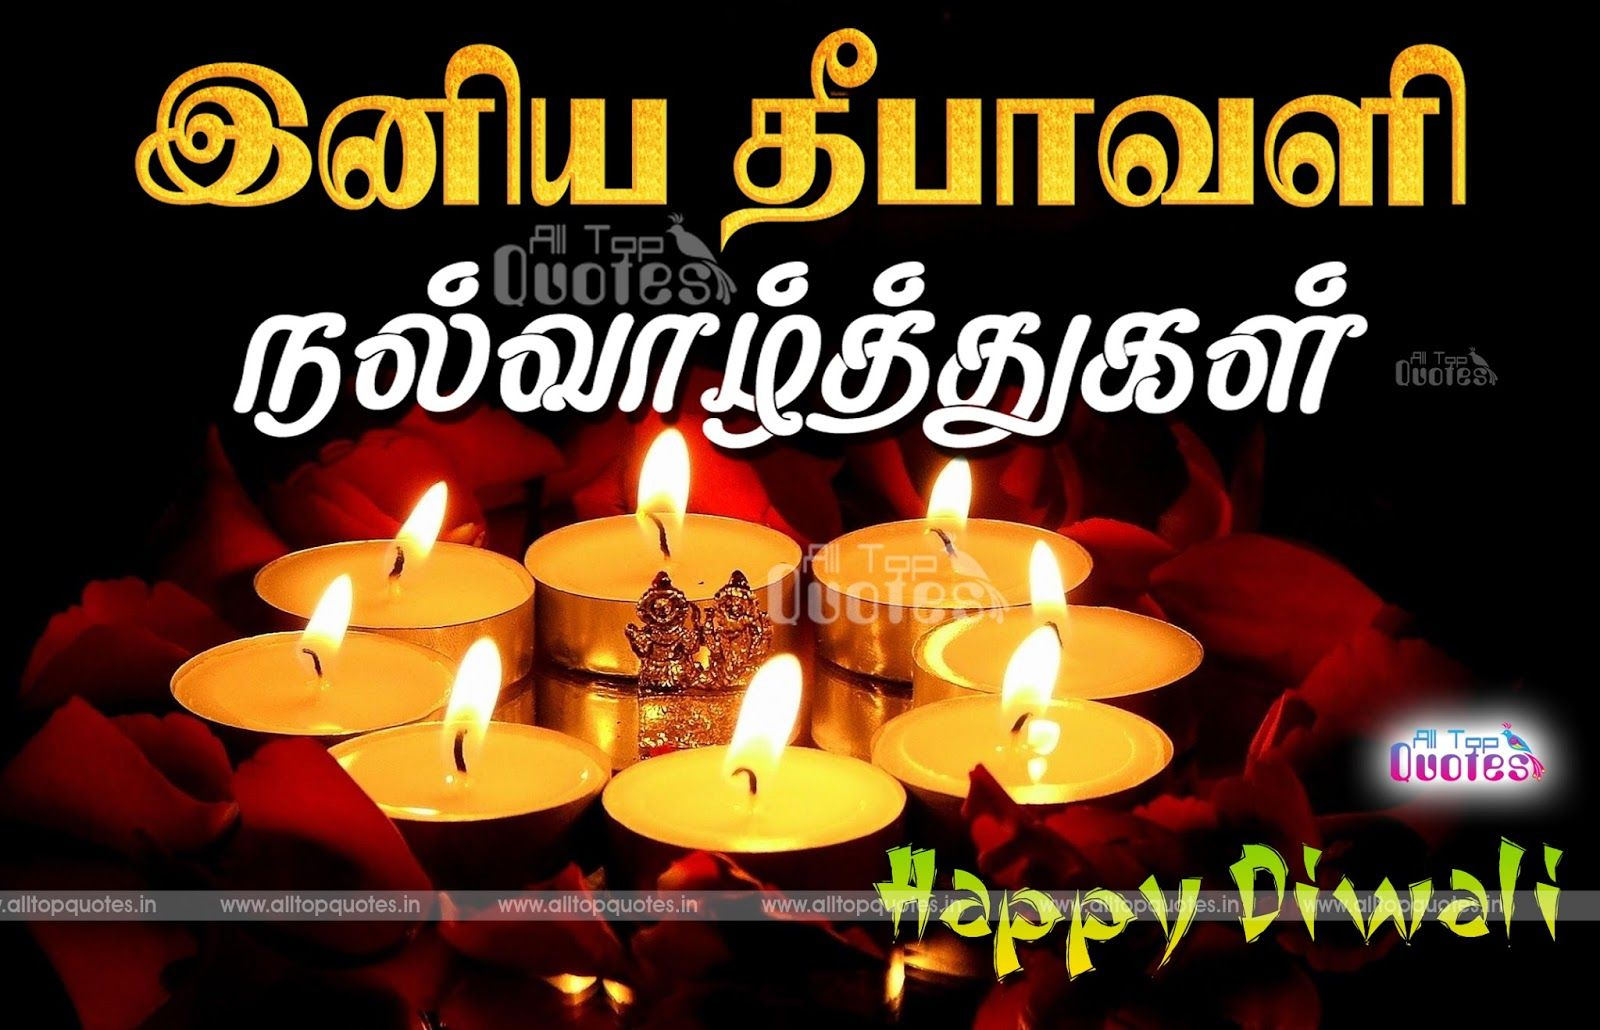 Happy diwali images in tamil imaganationface happy diwali tamil greetings quotes online hd images all top m4hsunfo